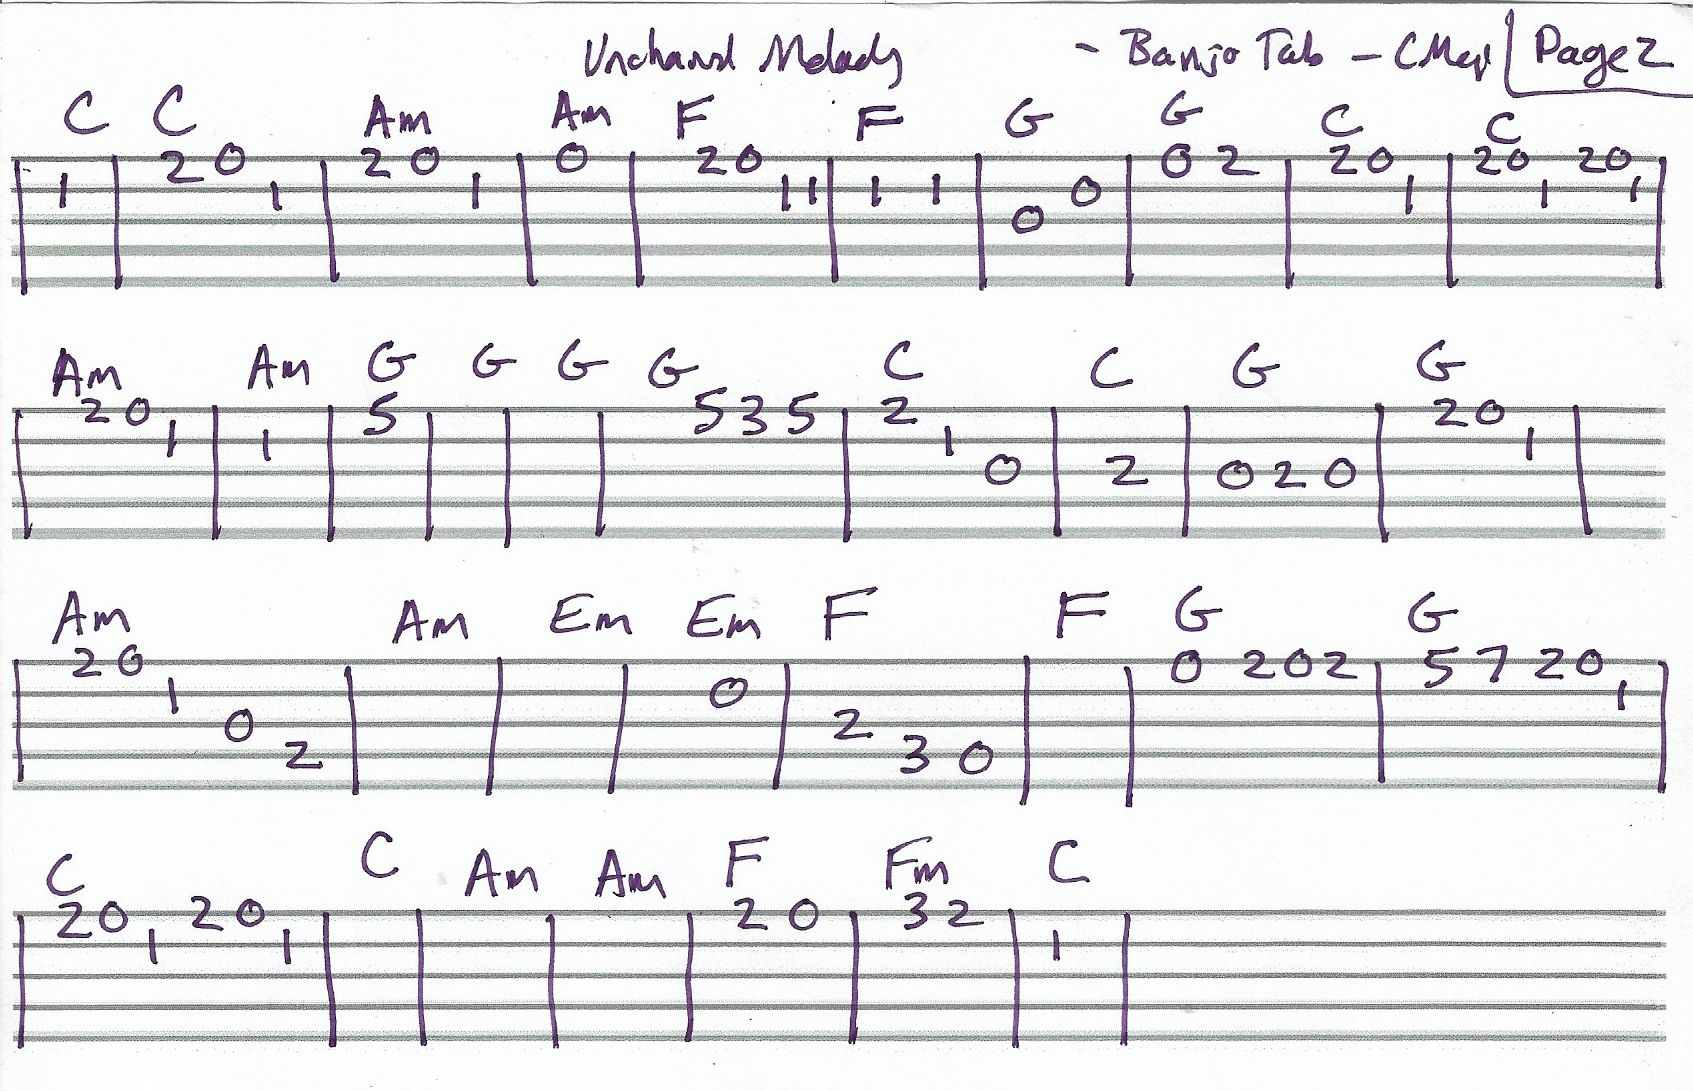 Unchained Melody Banjo Melody Tab In C Major Page 2 Of 2